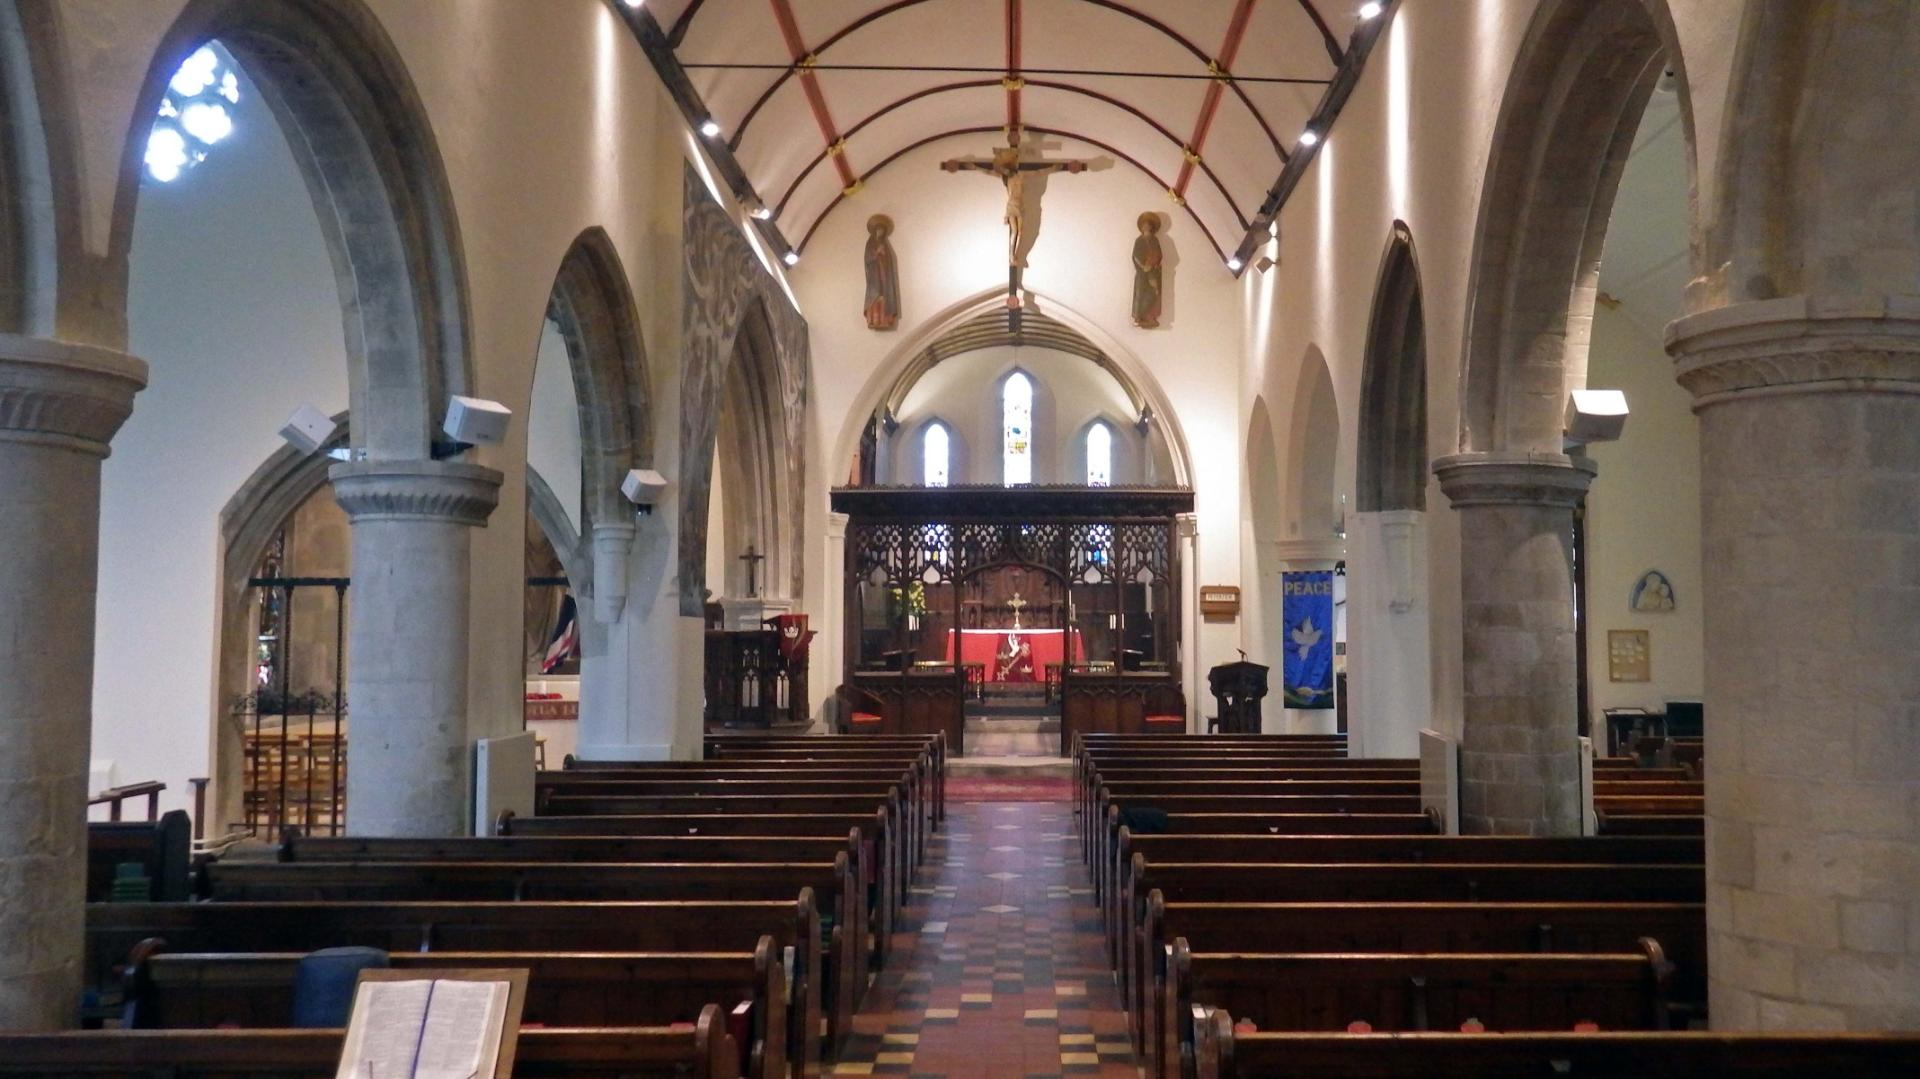 St._Peter's_Church,_Old_Town,_Bexhill_(indoor)